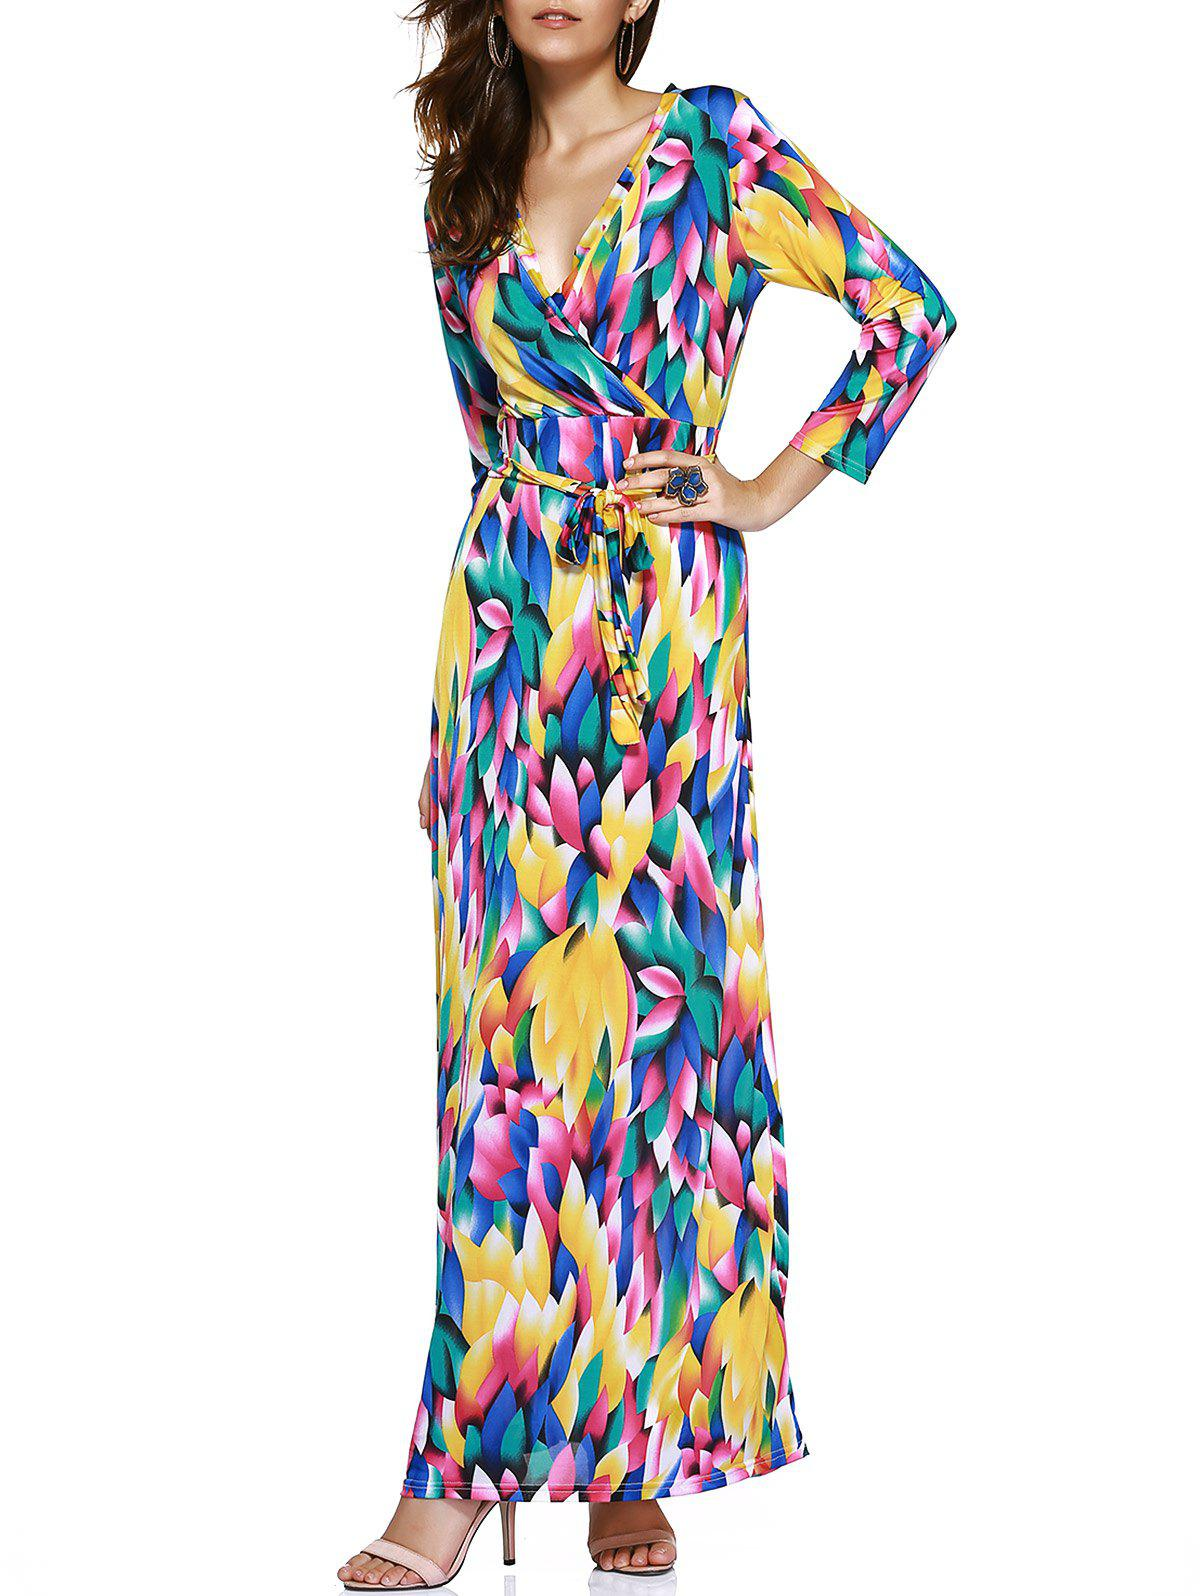 Trendy Women's Plunging Neck Colored Printed Maxi Dress - COLORFUL ONE SIZE